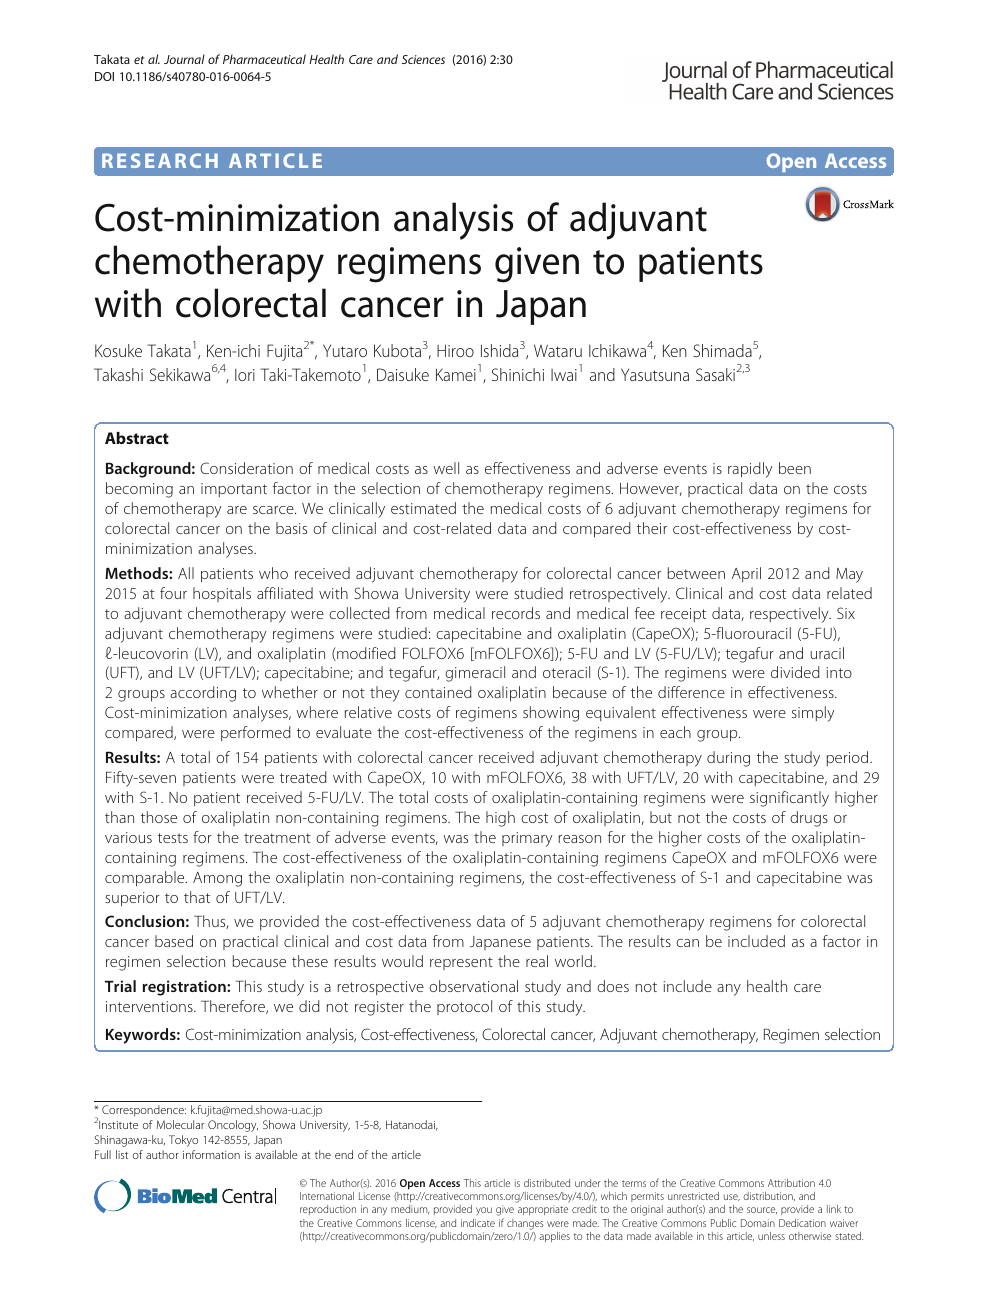 Cost Minimization Analysis Of Adjuvant Chemotherapy Regimens Given To Patients With Colorectal Cancer In Japan Topic Of Research Paper In Economics And Business Download Scholarly Article Pdf And Read For Free On